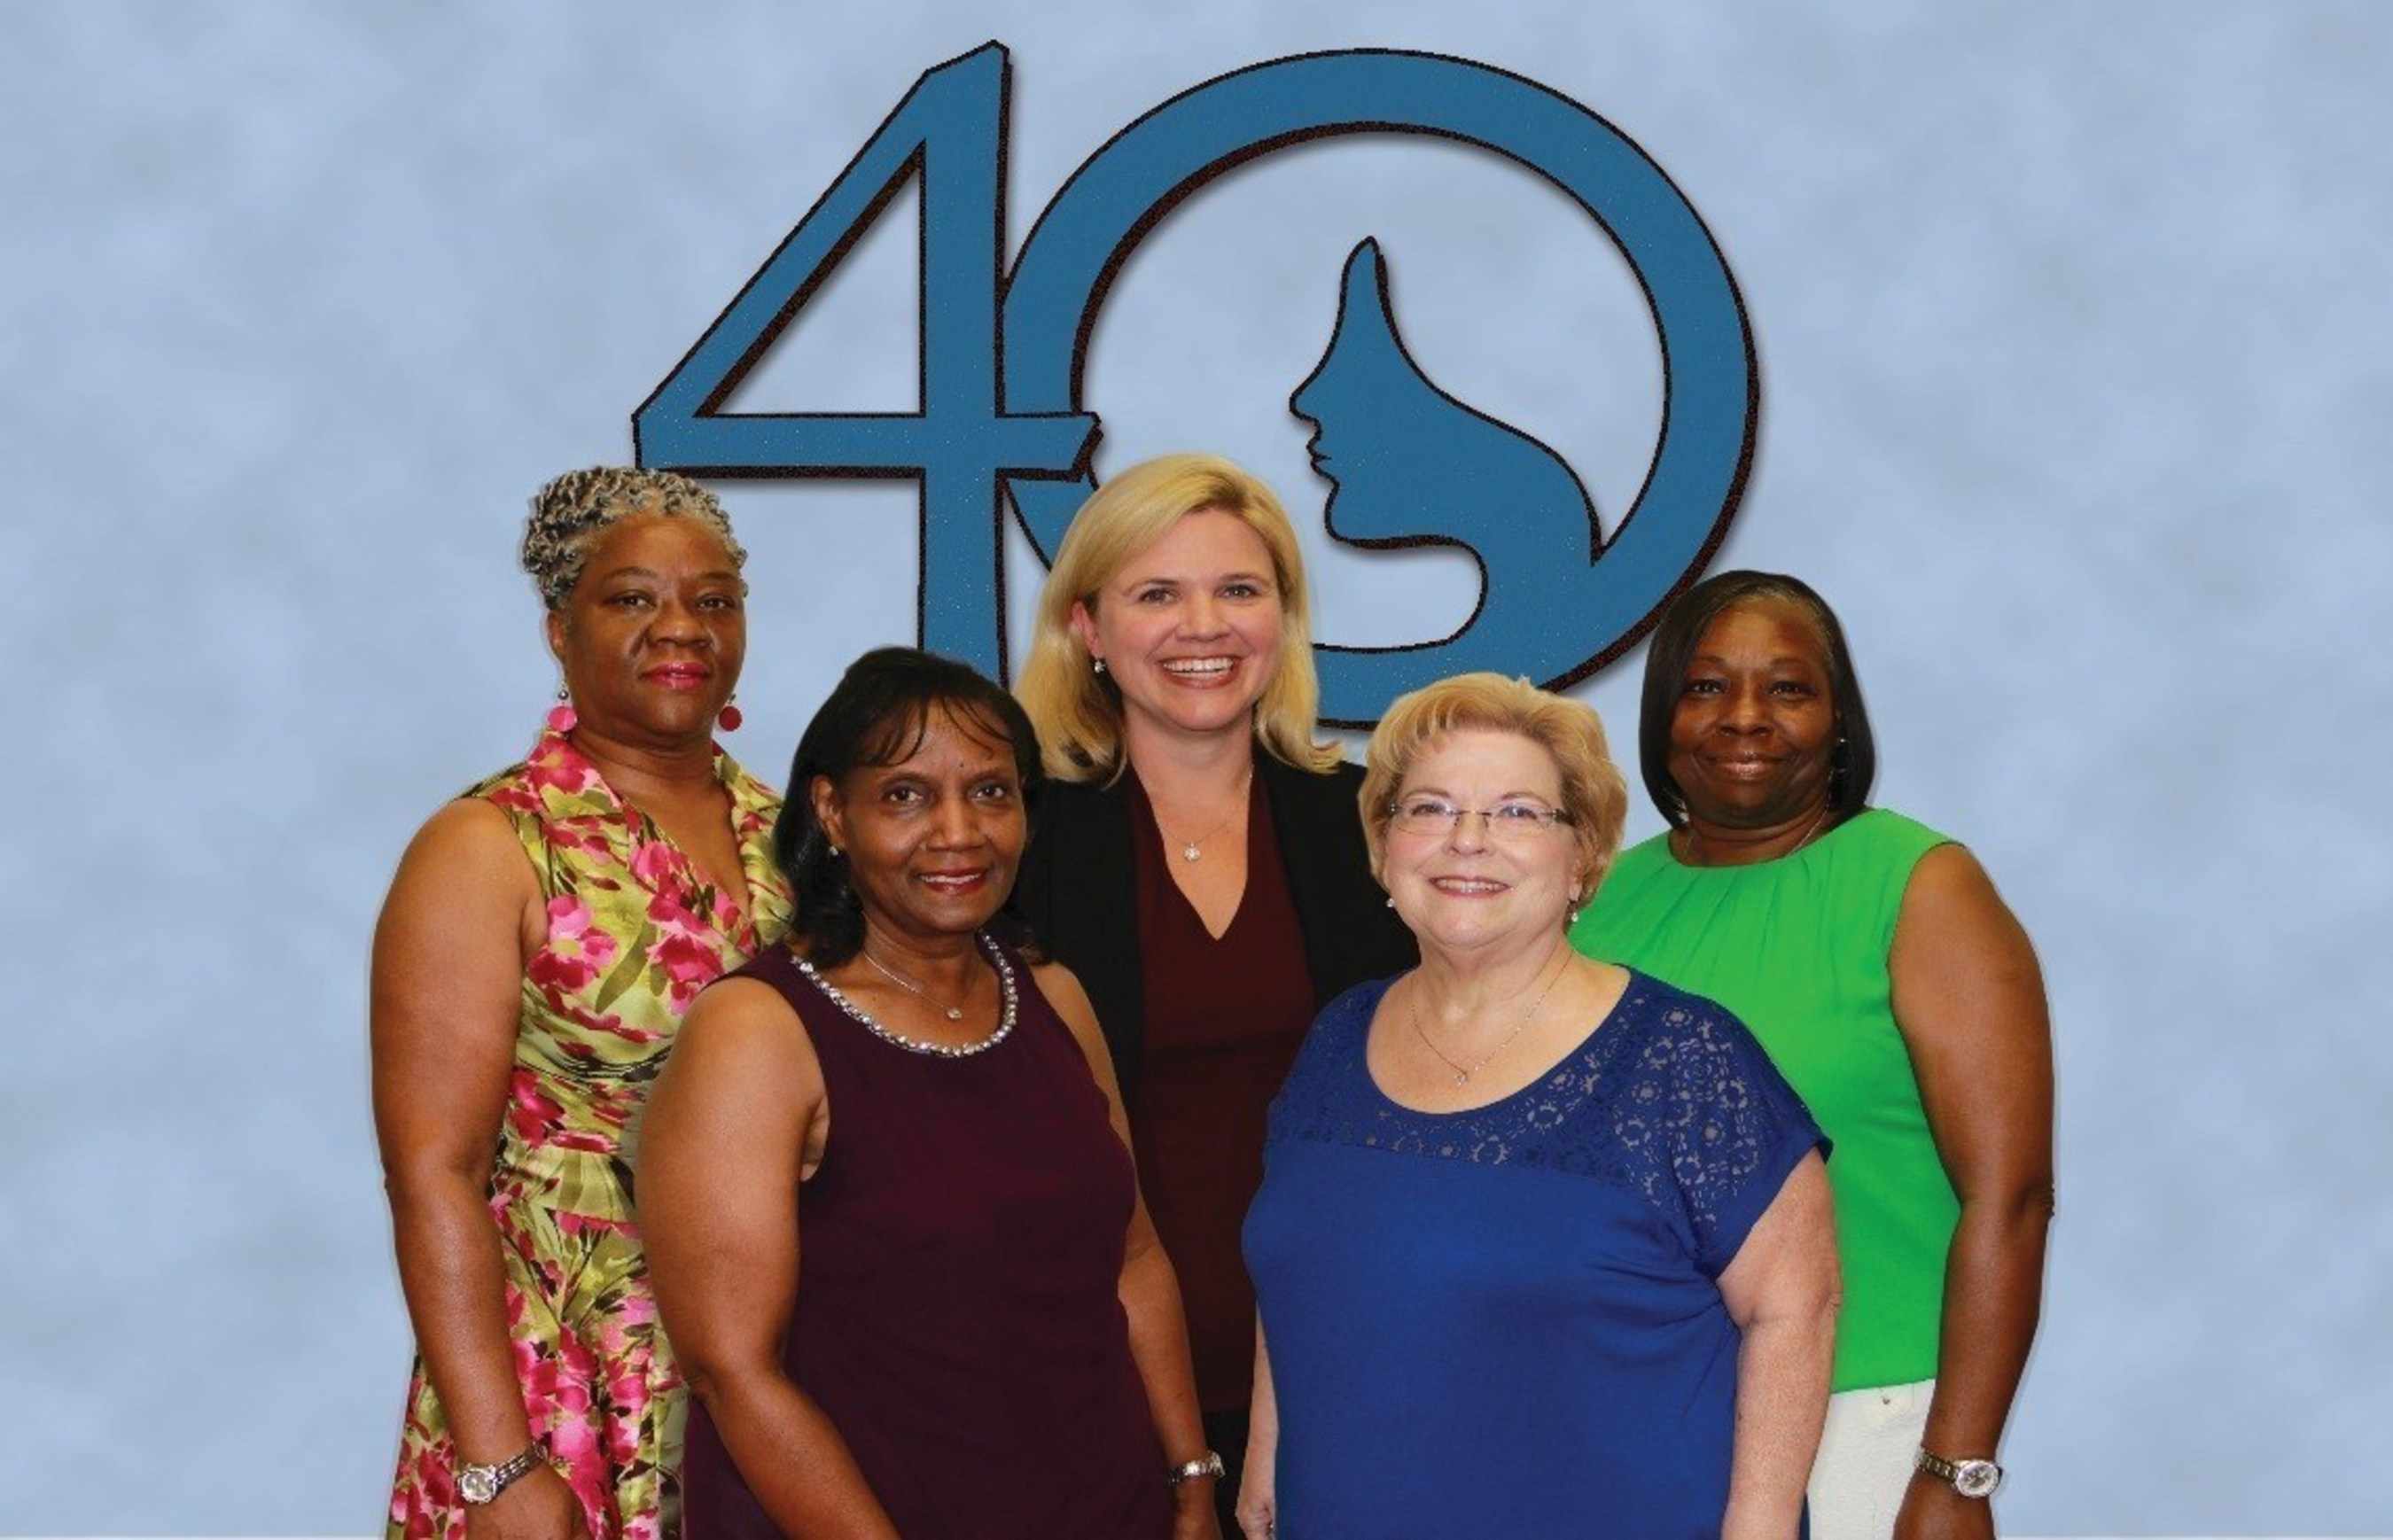 (Back Row, Left to Right) Surgical Technician Bobbie Hall Brown Hall, CEO Ashley McClellan, Labor and Delivery Unit Secretary Katherine Howard, (Front Row, Left To Right) Pre Surgical Testing Nurse Linda Washington, and Operating Room Nurse Carla Tehranchi of The Woman's Hospital of Texas. Ashley McClellan congratulates staff that began their careers at The Woman's Hospital of Texas 40 years ago.